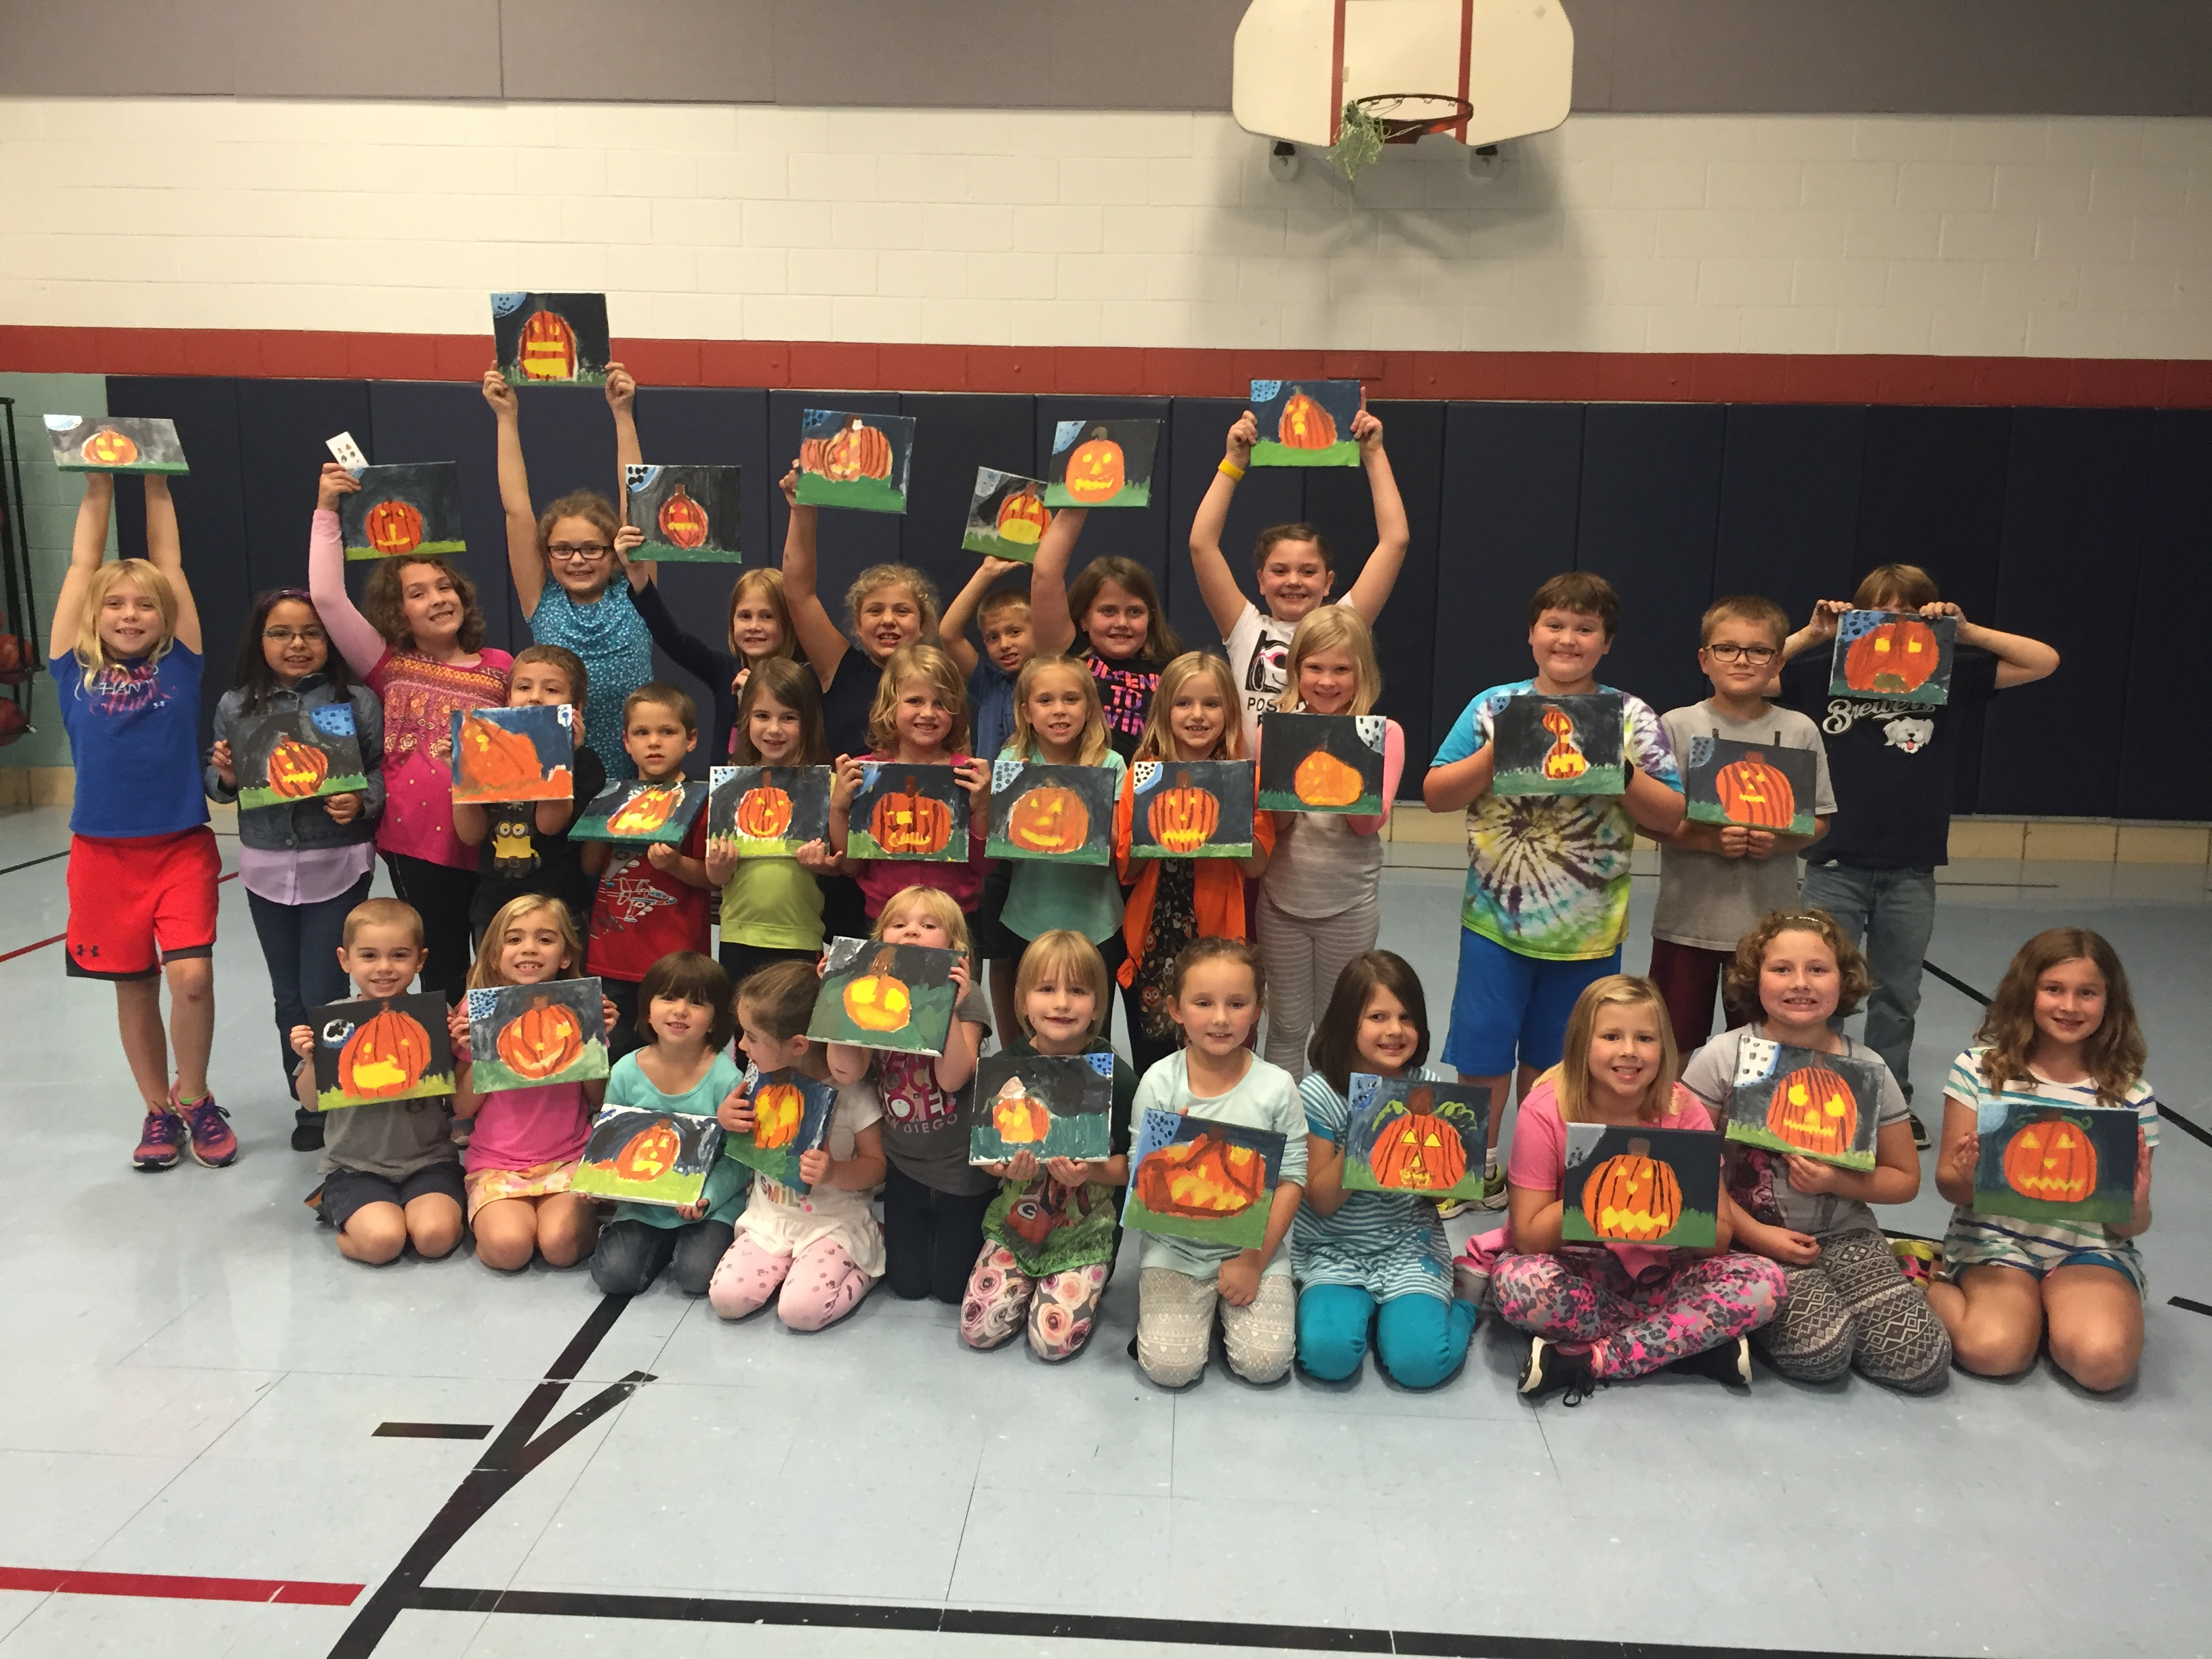 Students painted Jack-O-Lanterns for the Clinton Elementary Fundraiser on 10/6/16.